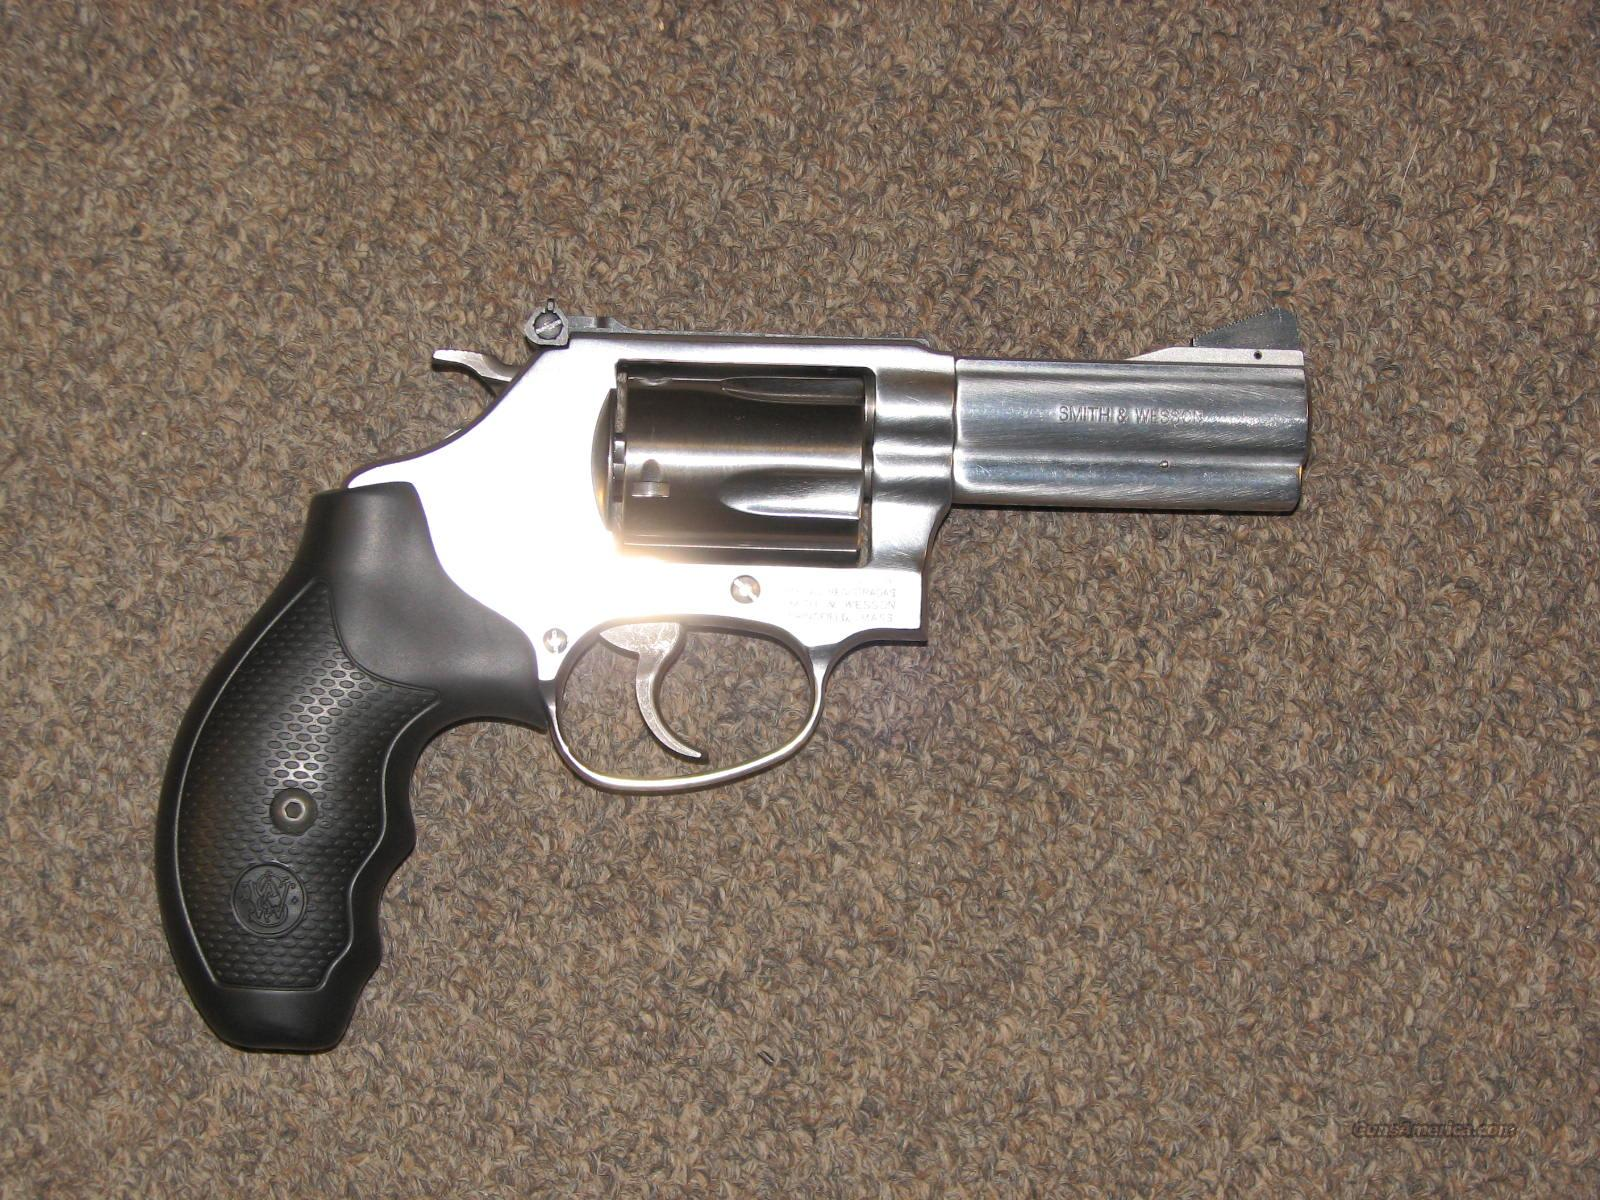 "SMITH & WESSON MODEL 60 .357 MAG 3"" - NEW!  Guns > Pistols > Smith & Wesson Revolvers > Pocket Pistols"